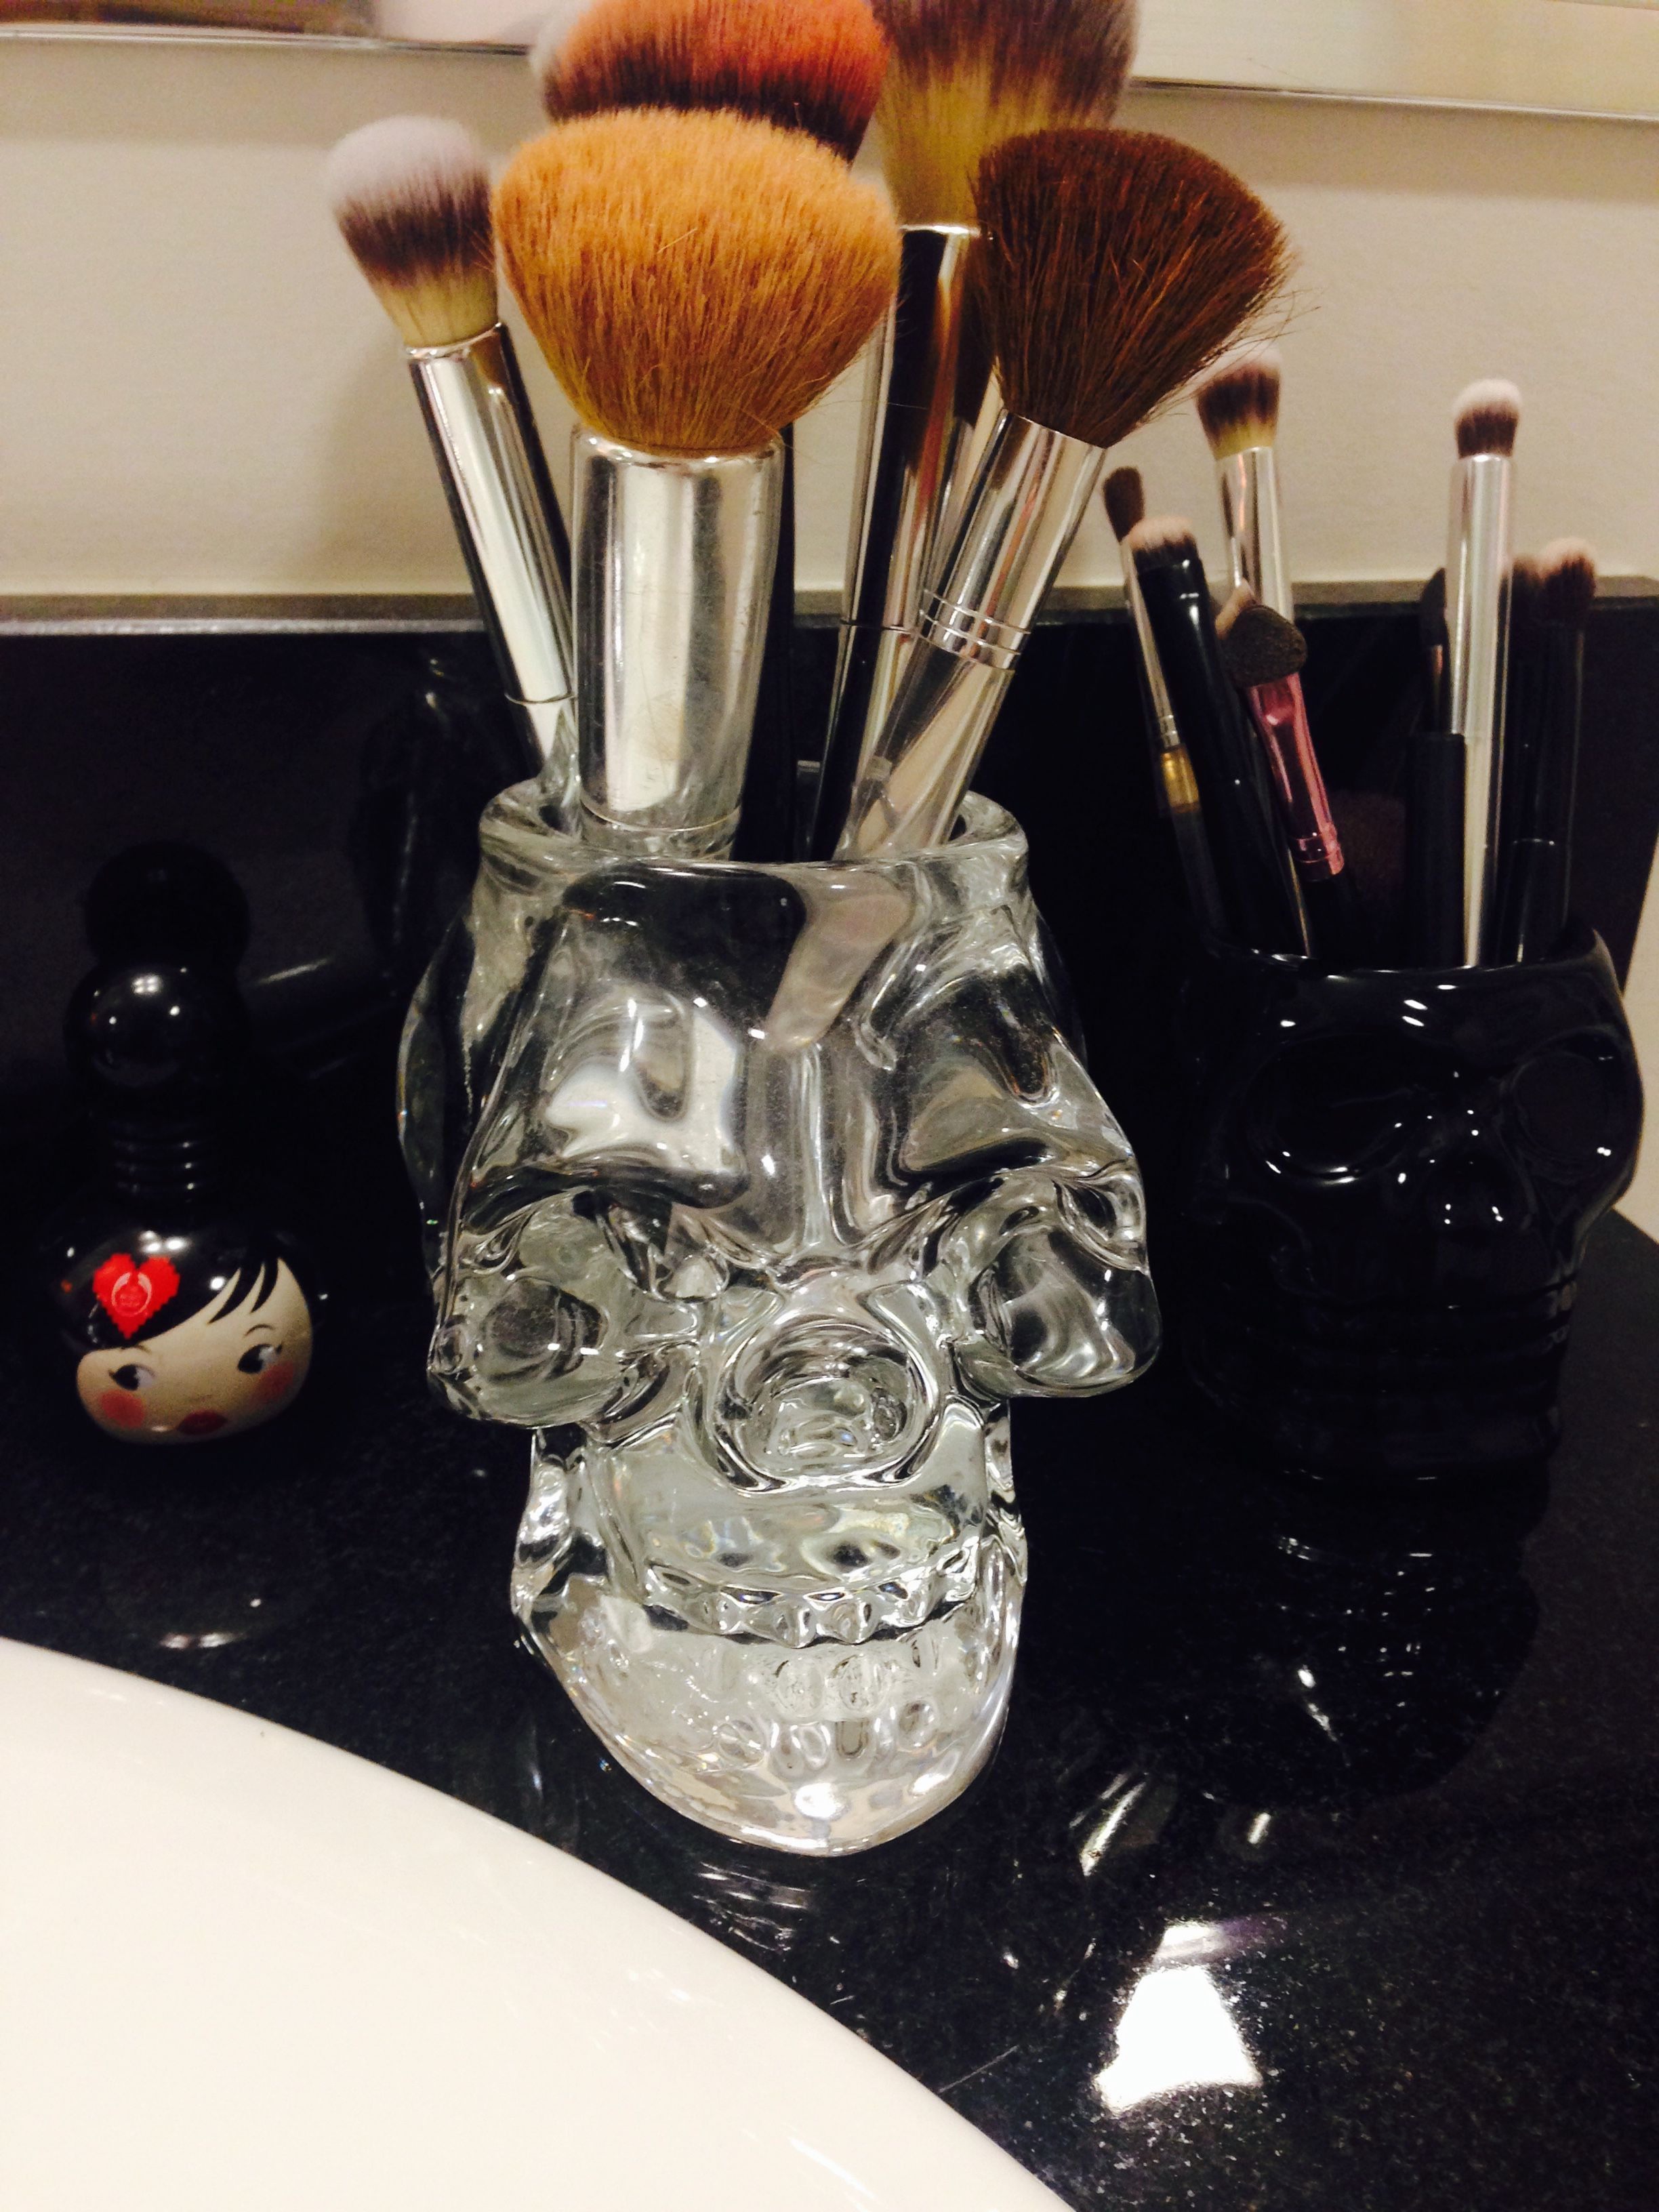 I wanted some rockandroll makeup brush holders so I took